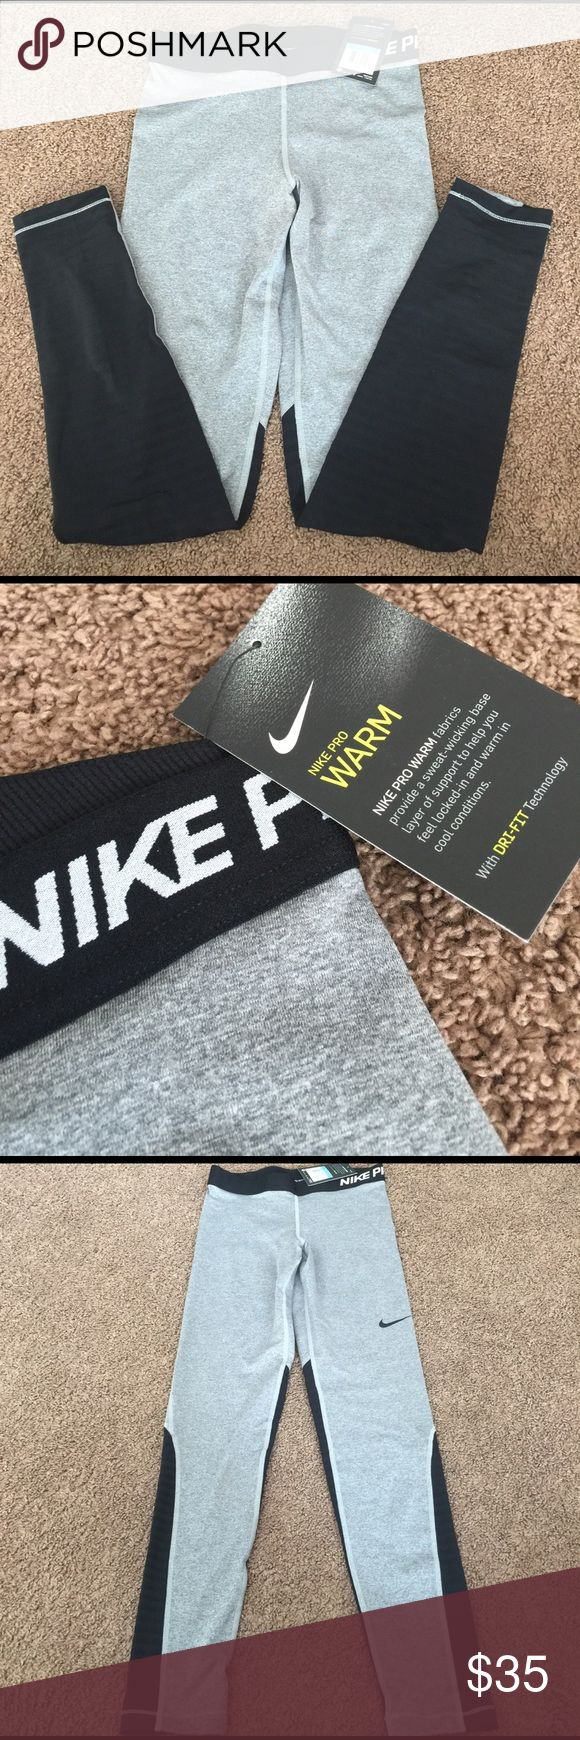 BNWT Nike Pro Warm leggings size medium. Brand NEW w/tag Nike Pro Warm leggings size medium! Decent offers are more than welcomed 😊 Nike Pants Leggings